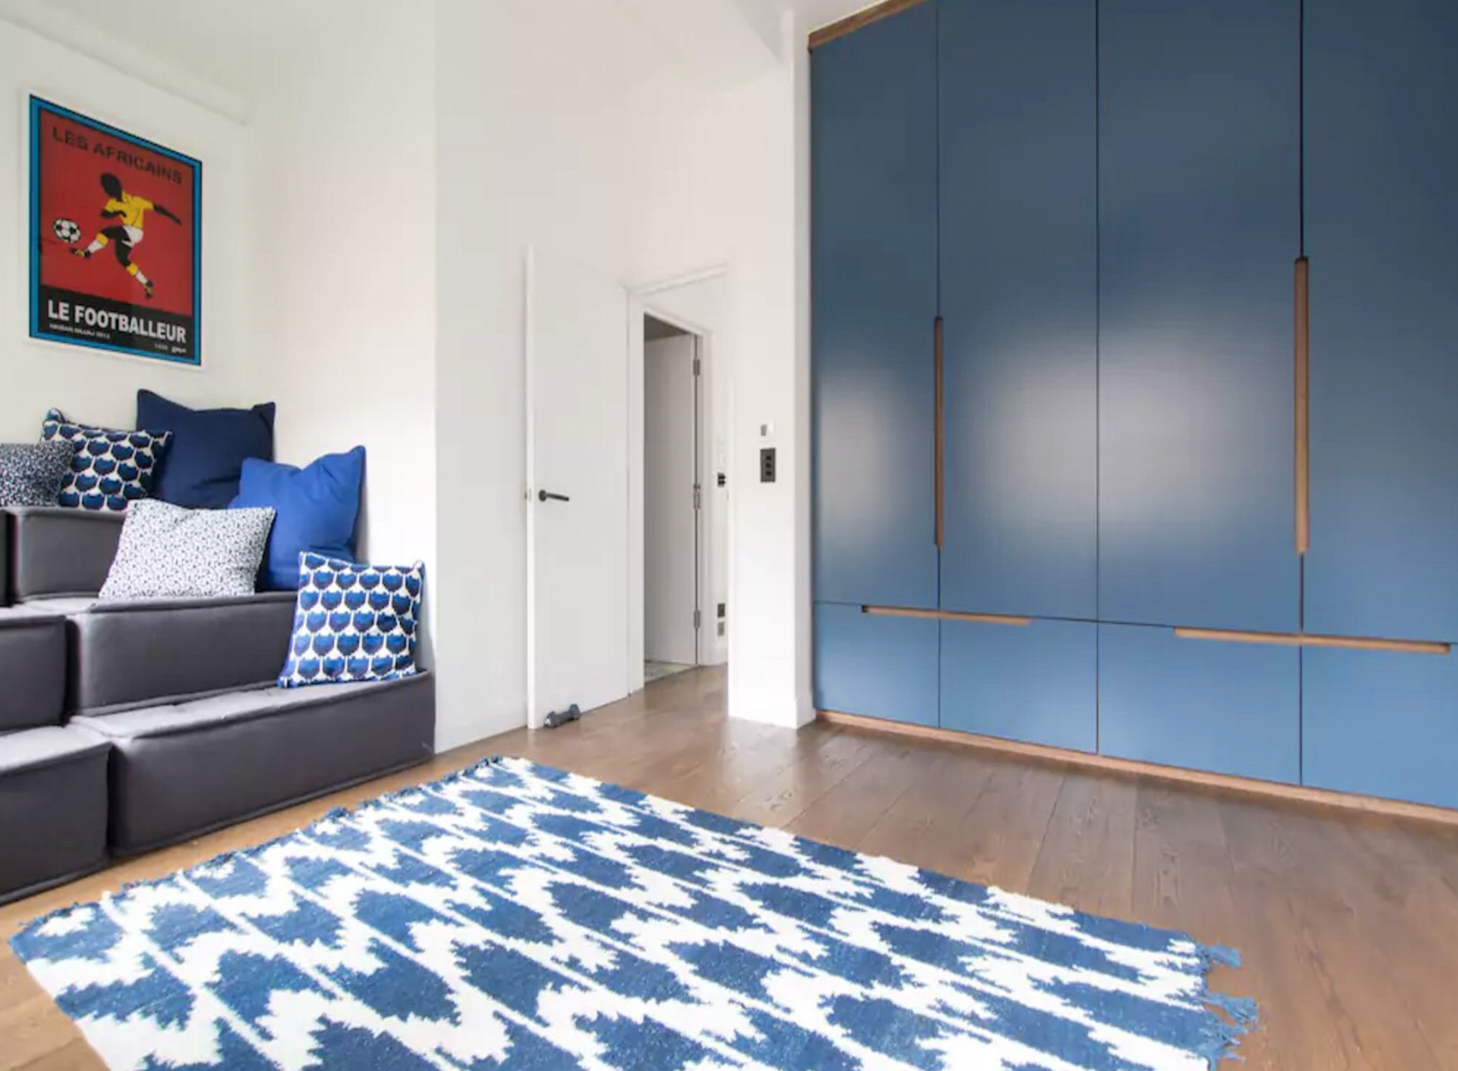 Doors in Farrow and Ball Stifkey Blue. Cabinetry in Walnut veneered MDF.